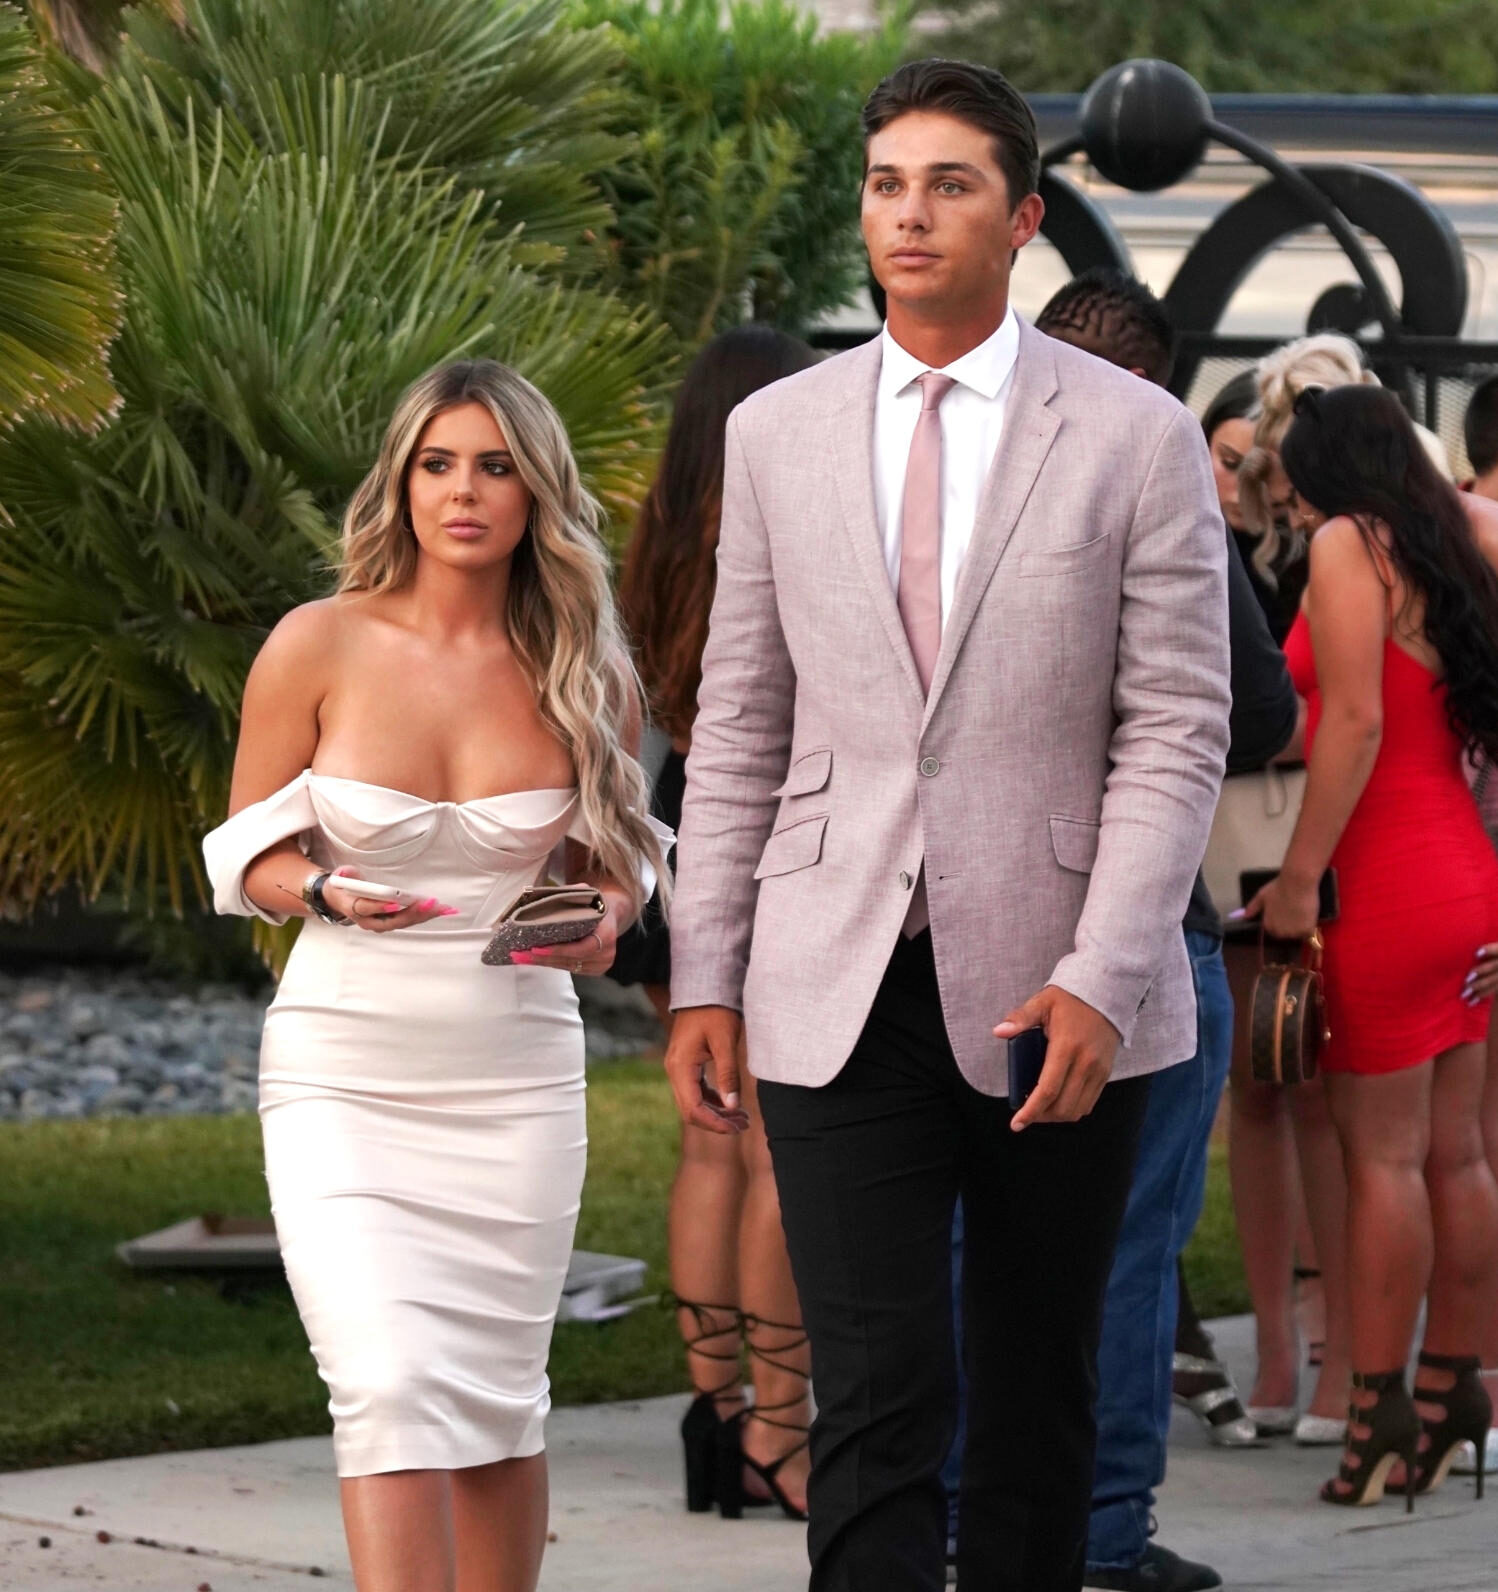 PHOTOS: Don't Be Tardy Star Brielle Biermann Gets Cozy Baseball Player Justin Hooper at Vegas Wedding